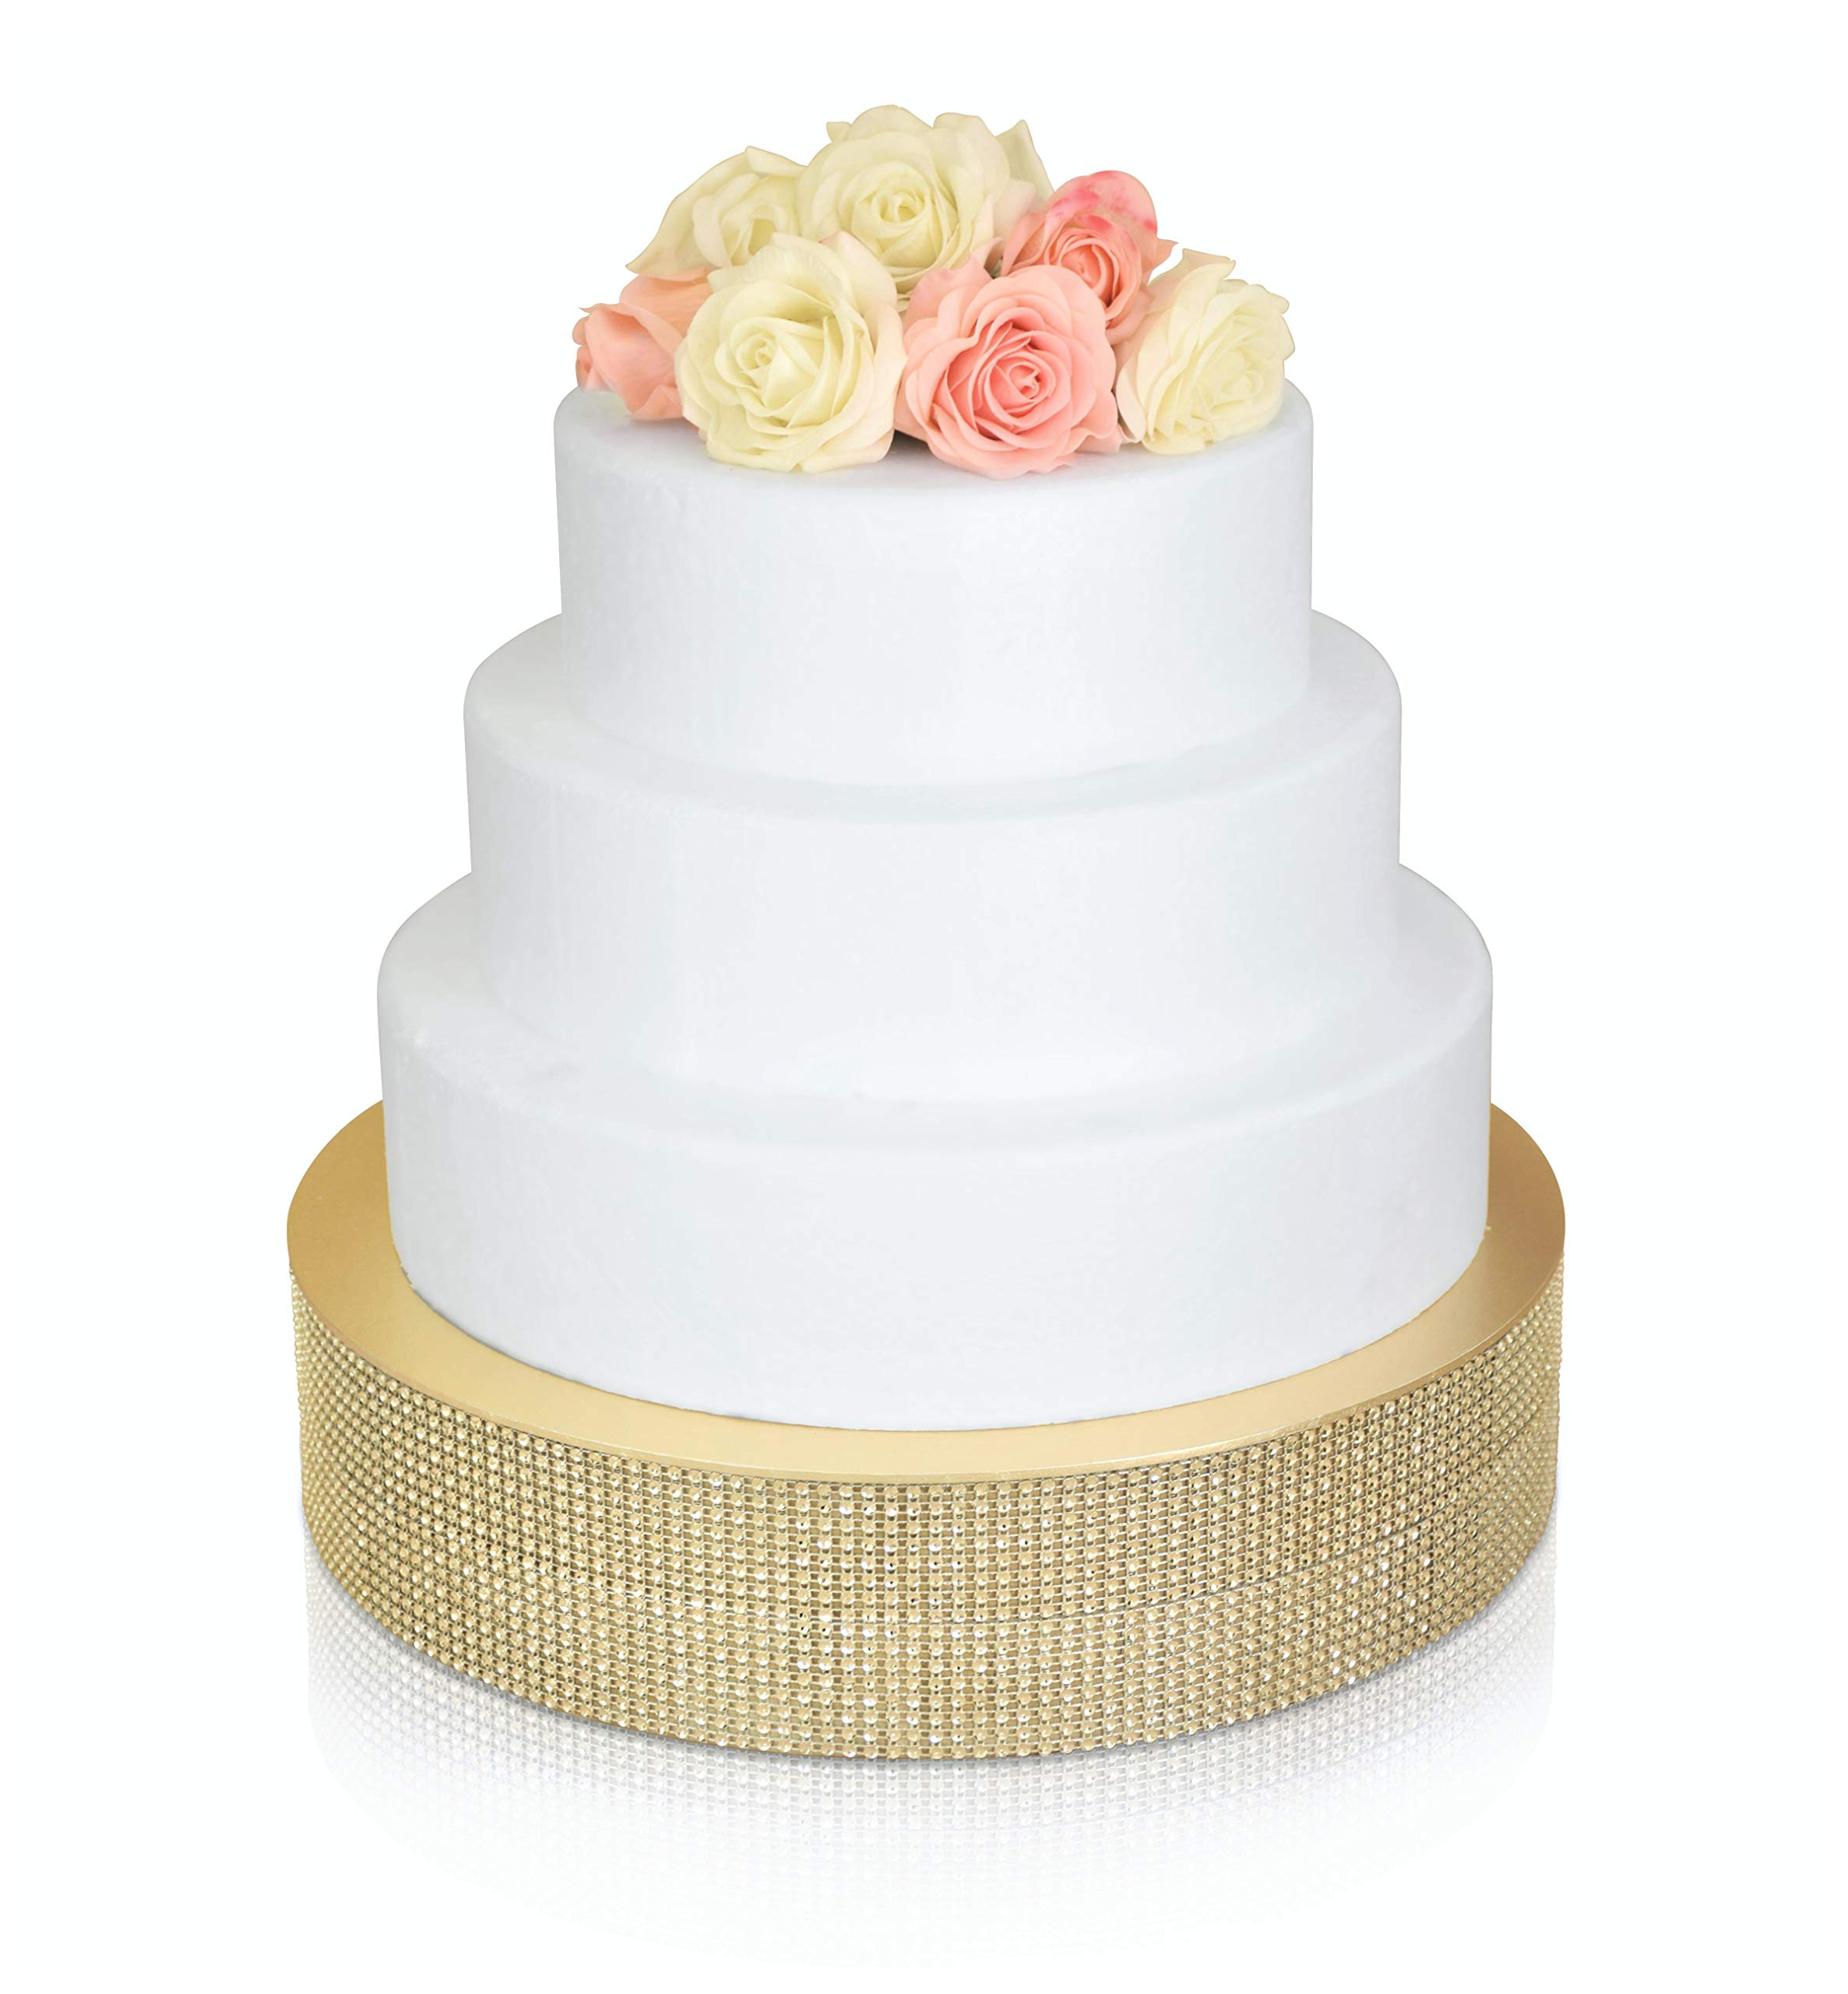 '' OCCASIONS'' Bling Wedding Cake Stand (holds 150 lbs) Cupcake Base, Decorative Centerpiece for Parties (16'' Round, Soft Gold) by OCCASIONS FINEST PLASTIC TABLEWARE